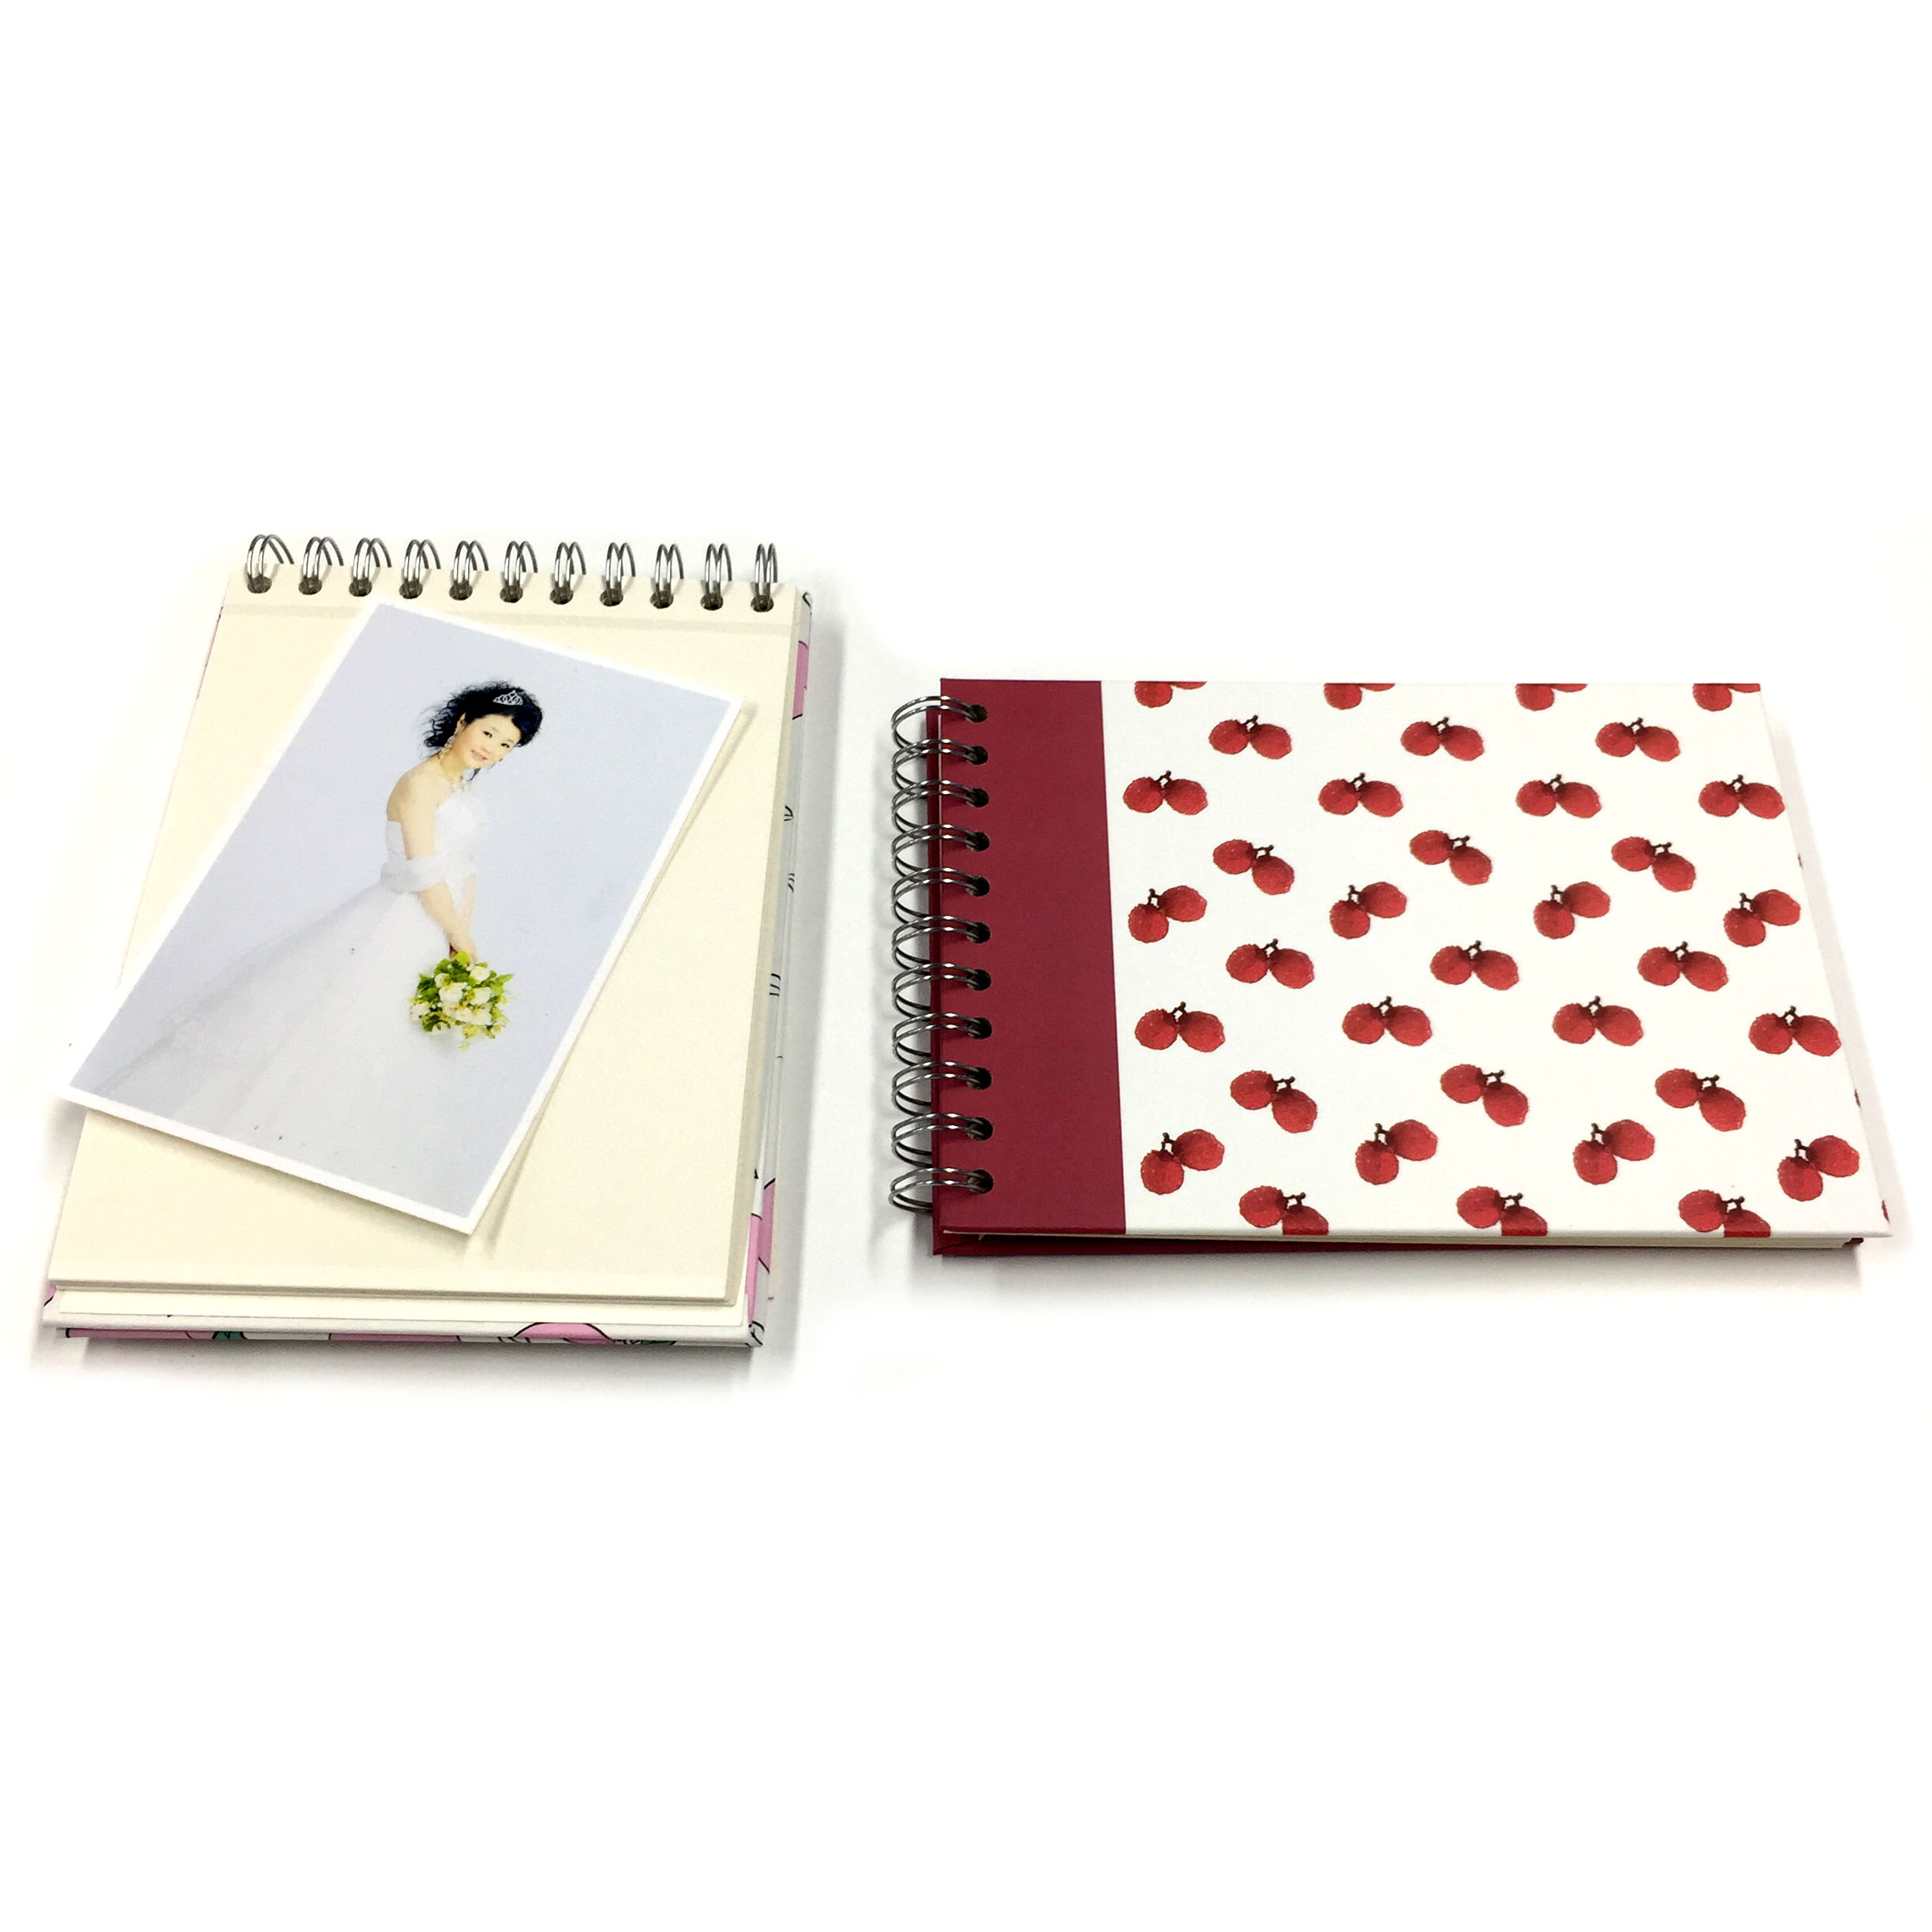 application-Custom notebook-Photo album-Scratch off poster-Dezheng-img